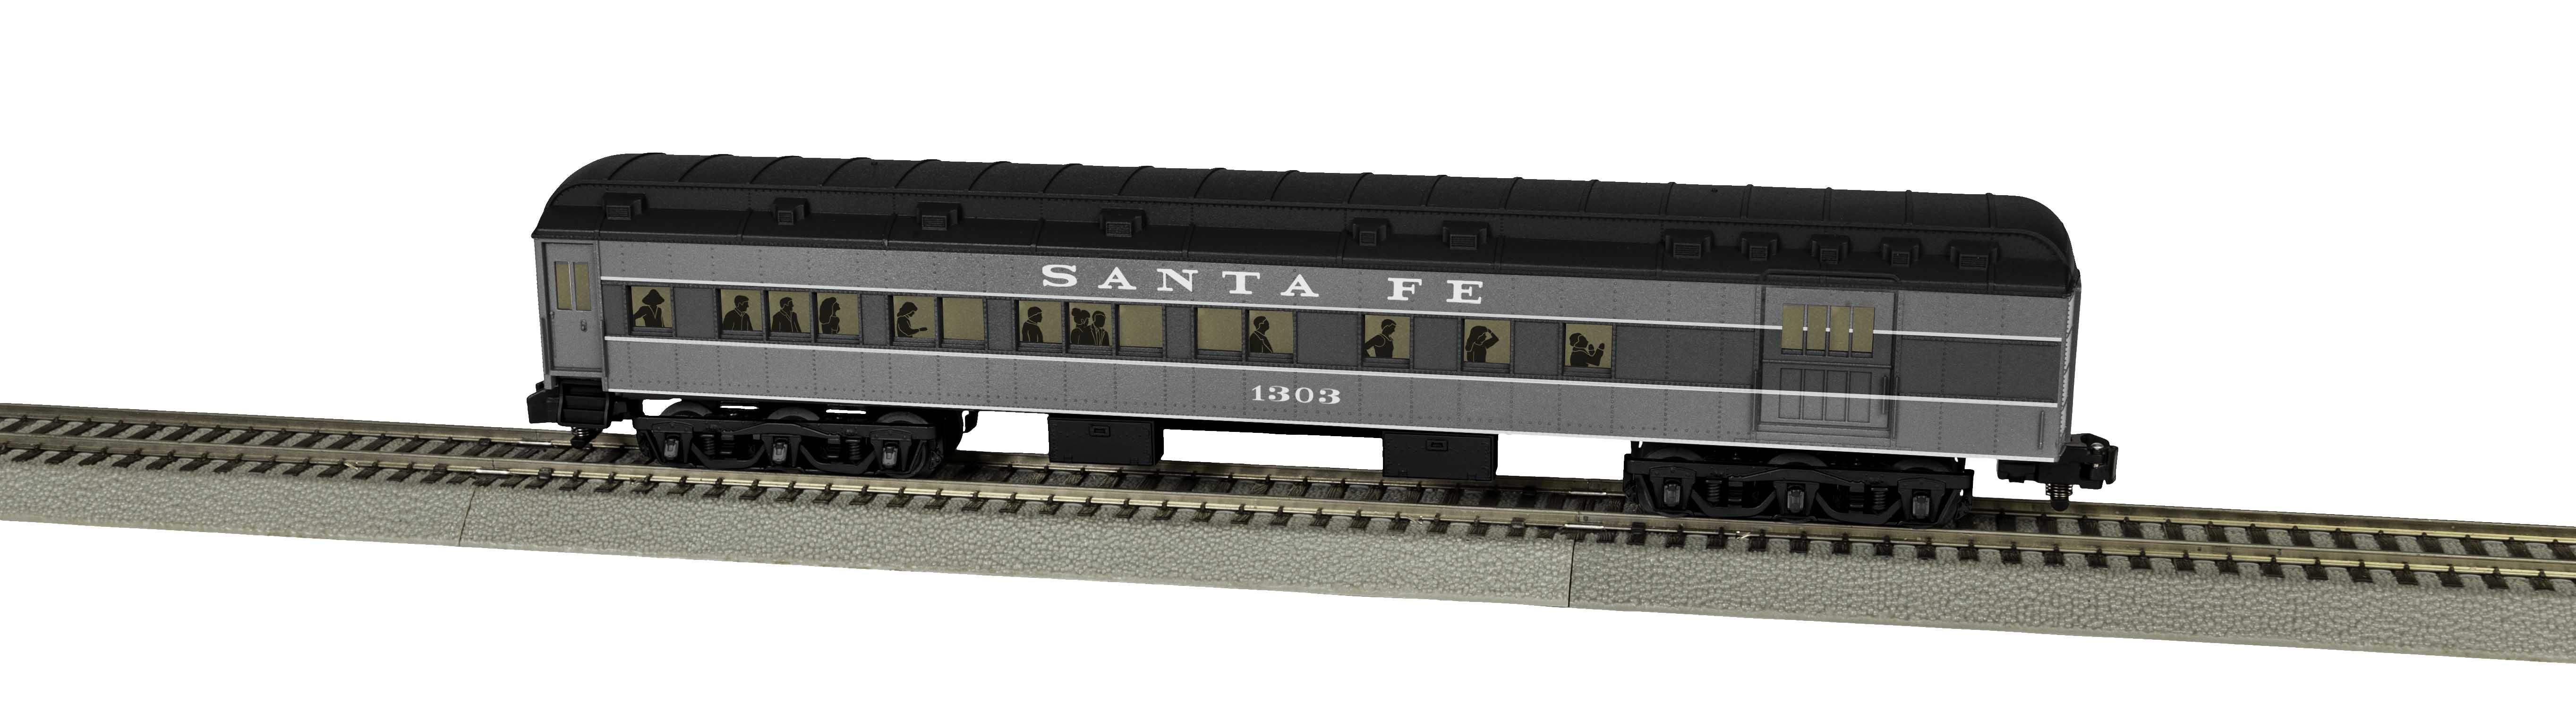 Lionel 2019240 S Santa Fe Heavyweight Combine Car #1303